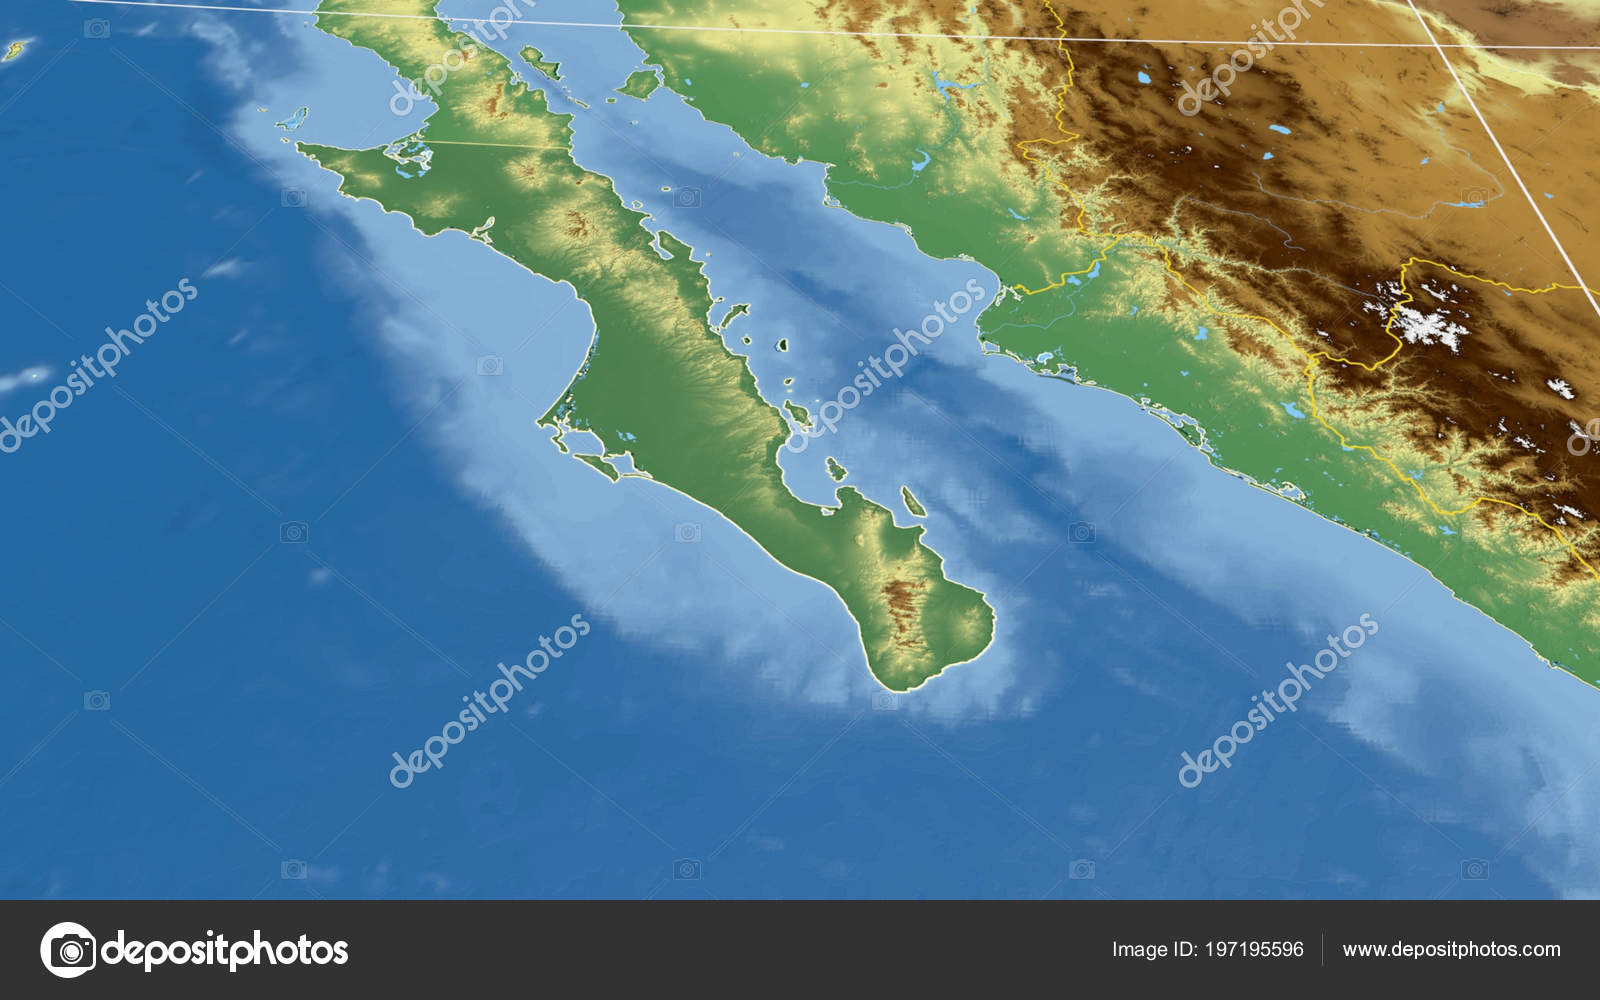 Baja California Sur Region Mexico Outlined Color Physical Map ...